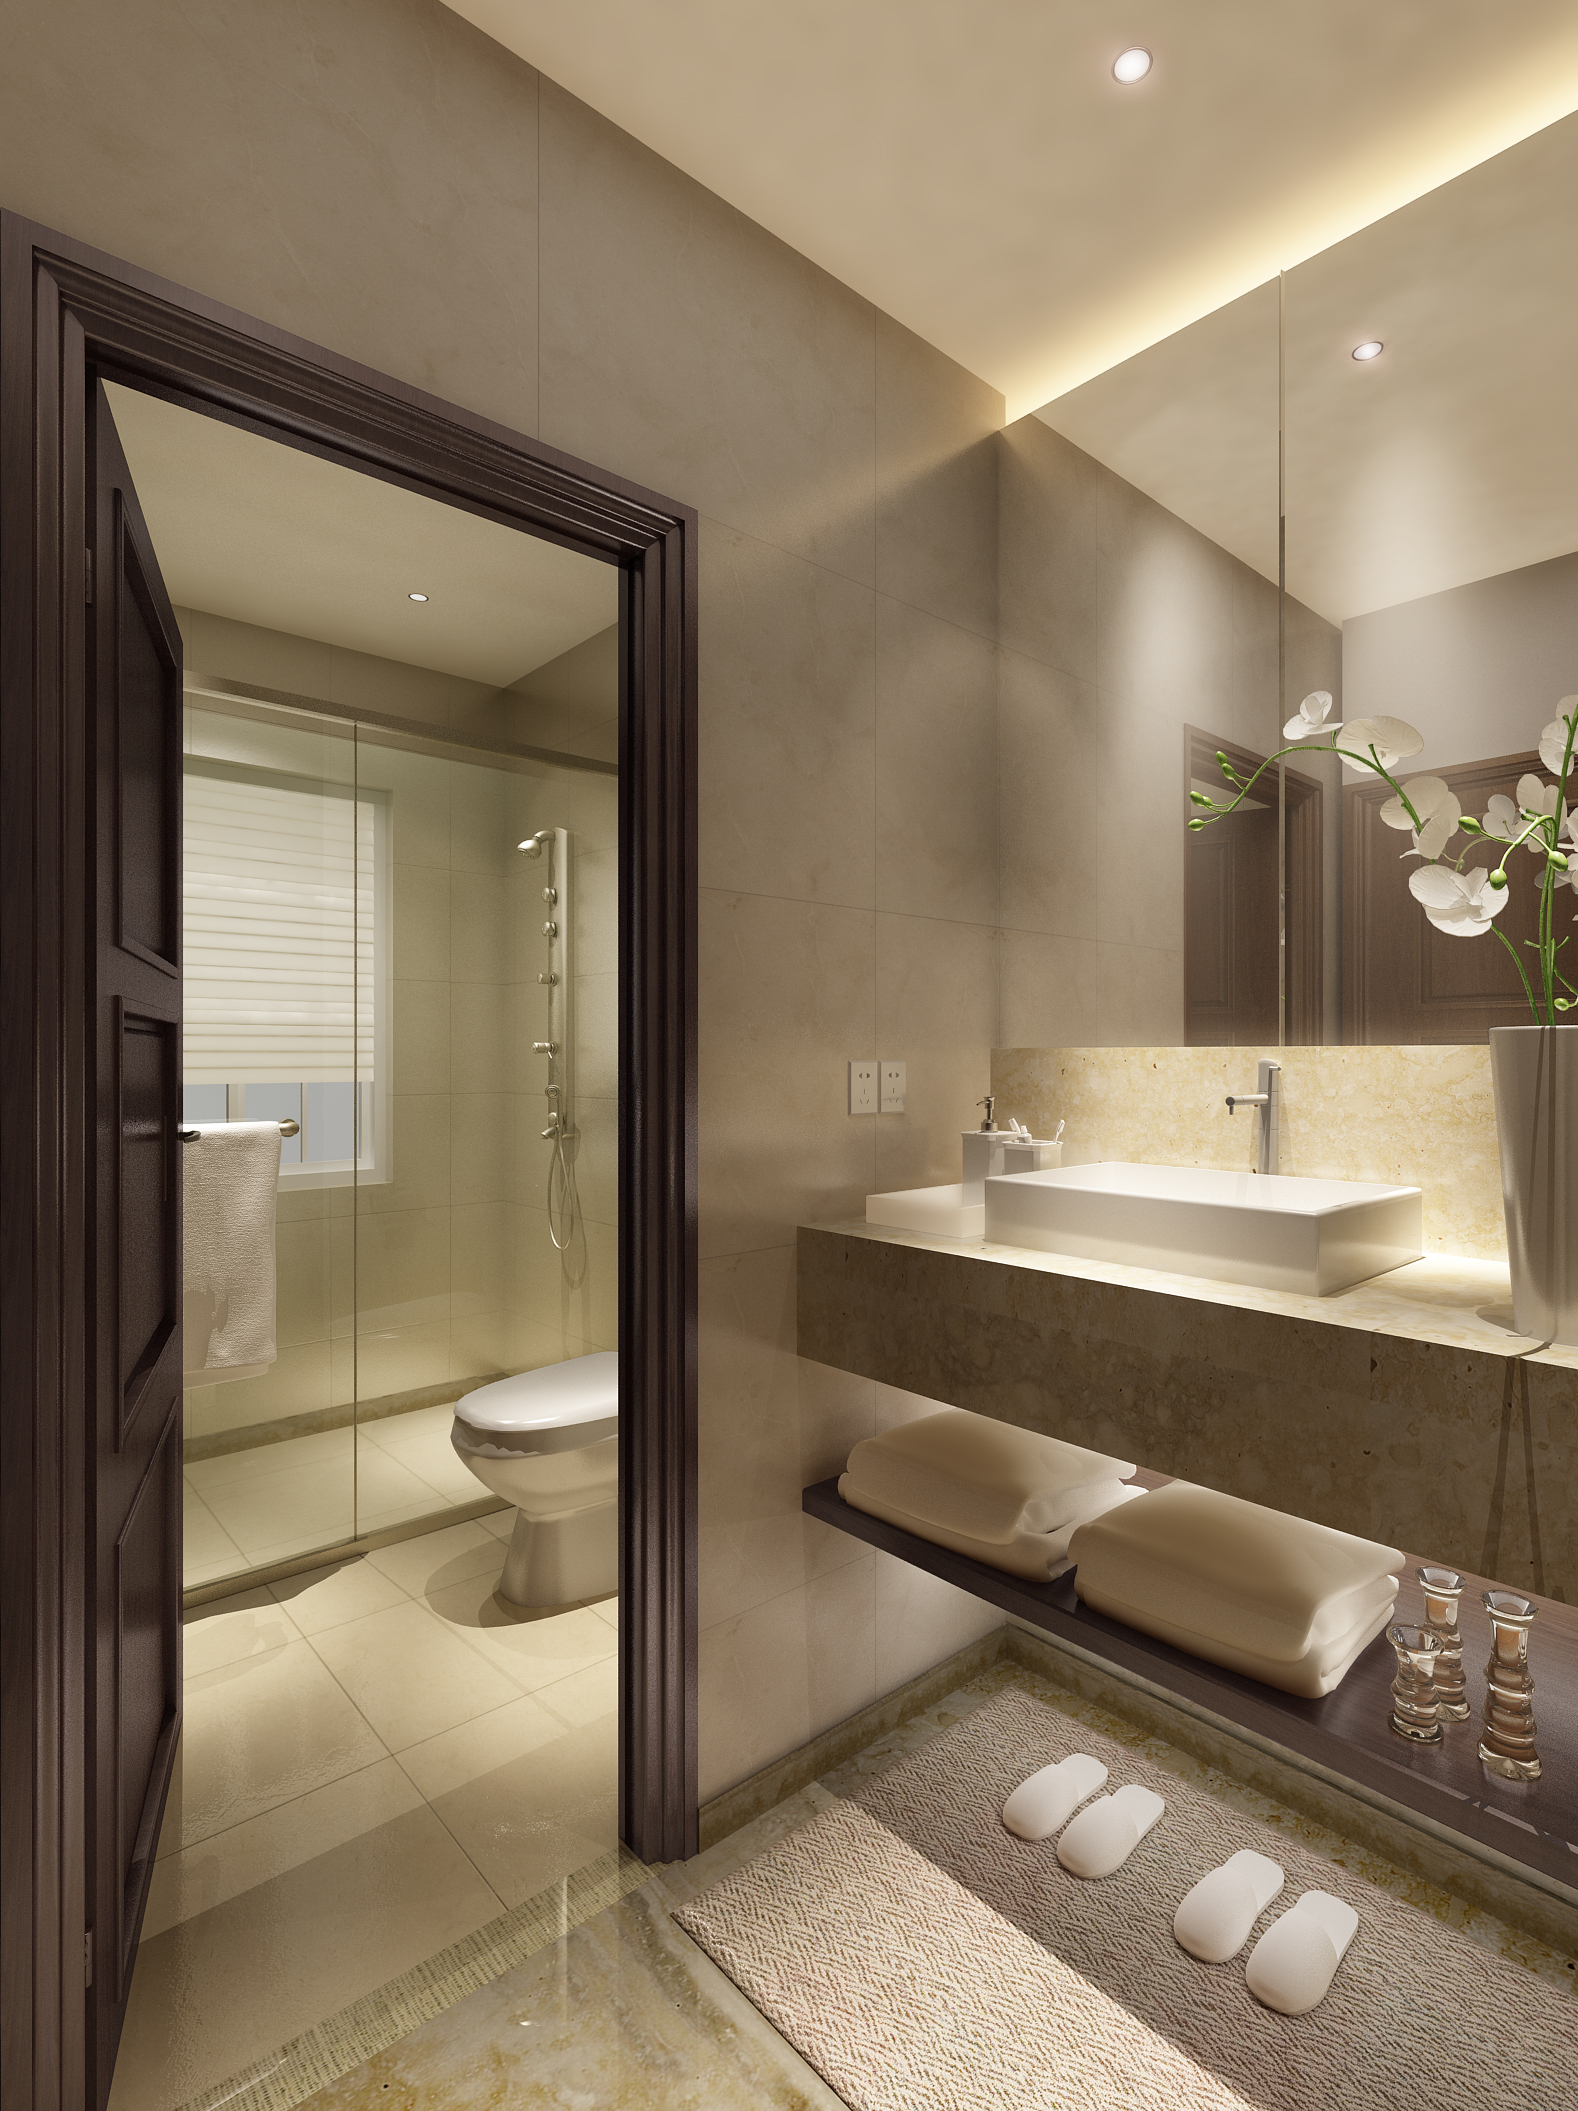 Small Bathroom Design Images Luxurious Bathroom With Marble Floor 3d Model Max